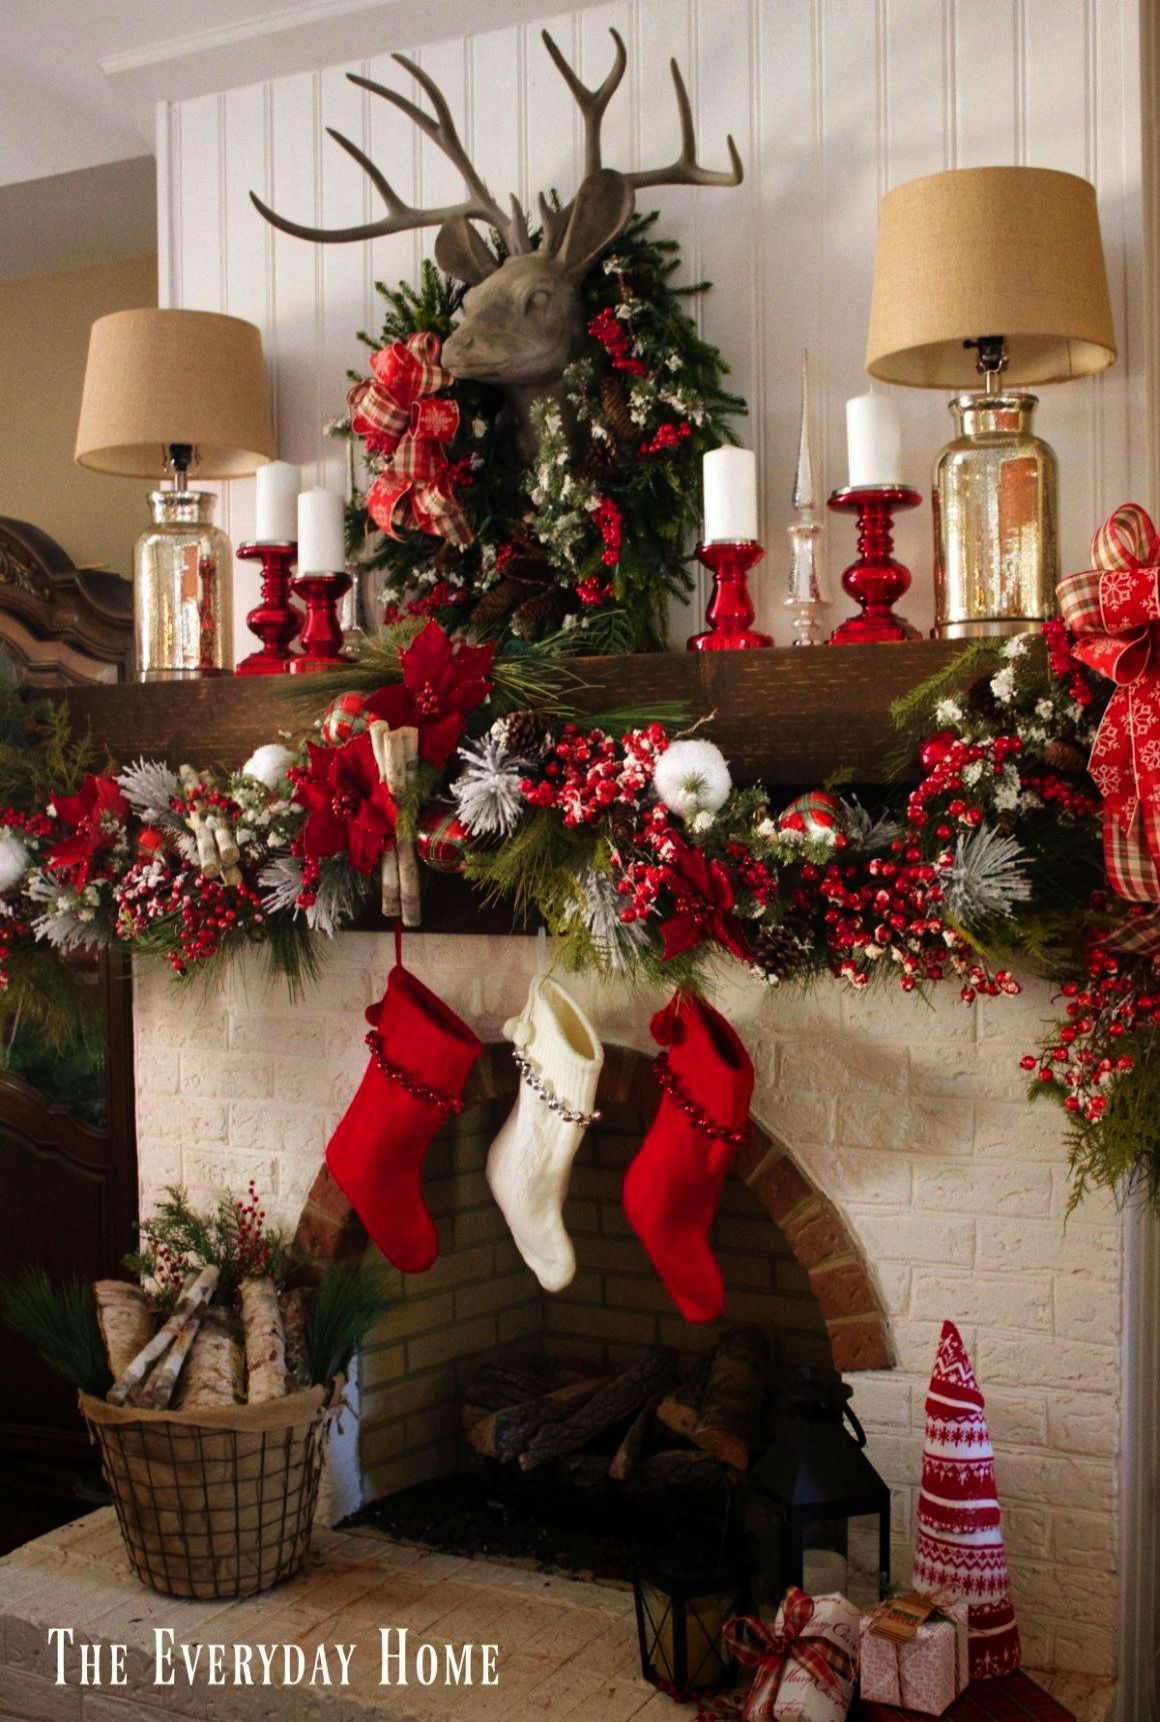 Christmas Homecoming Ideas.Christmas Decor Homestead Fl So Christmas In Homestead Cast